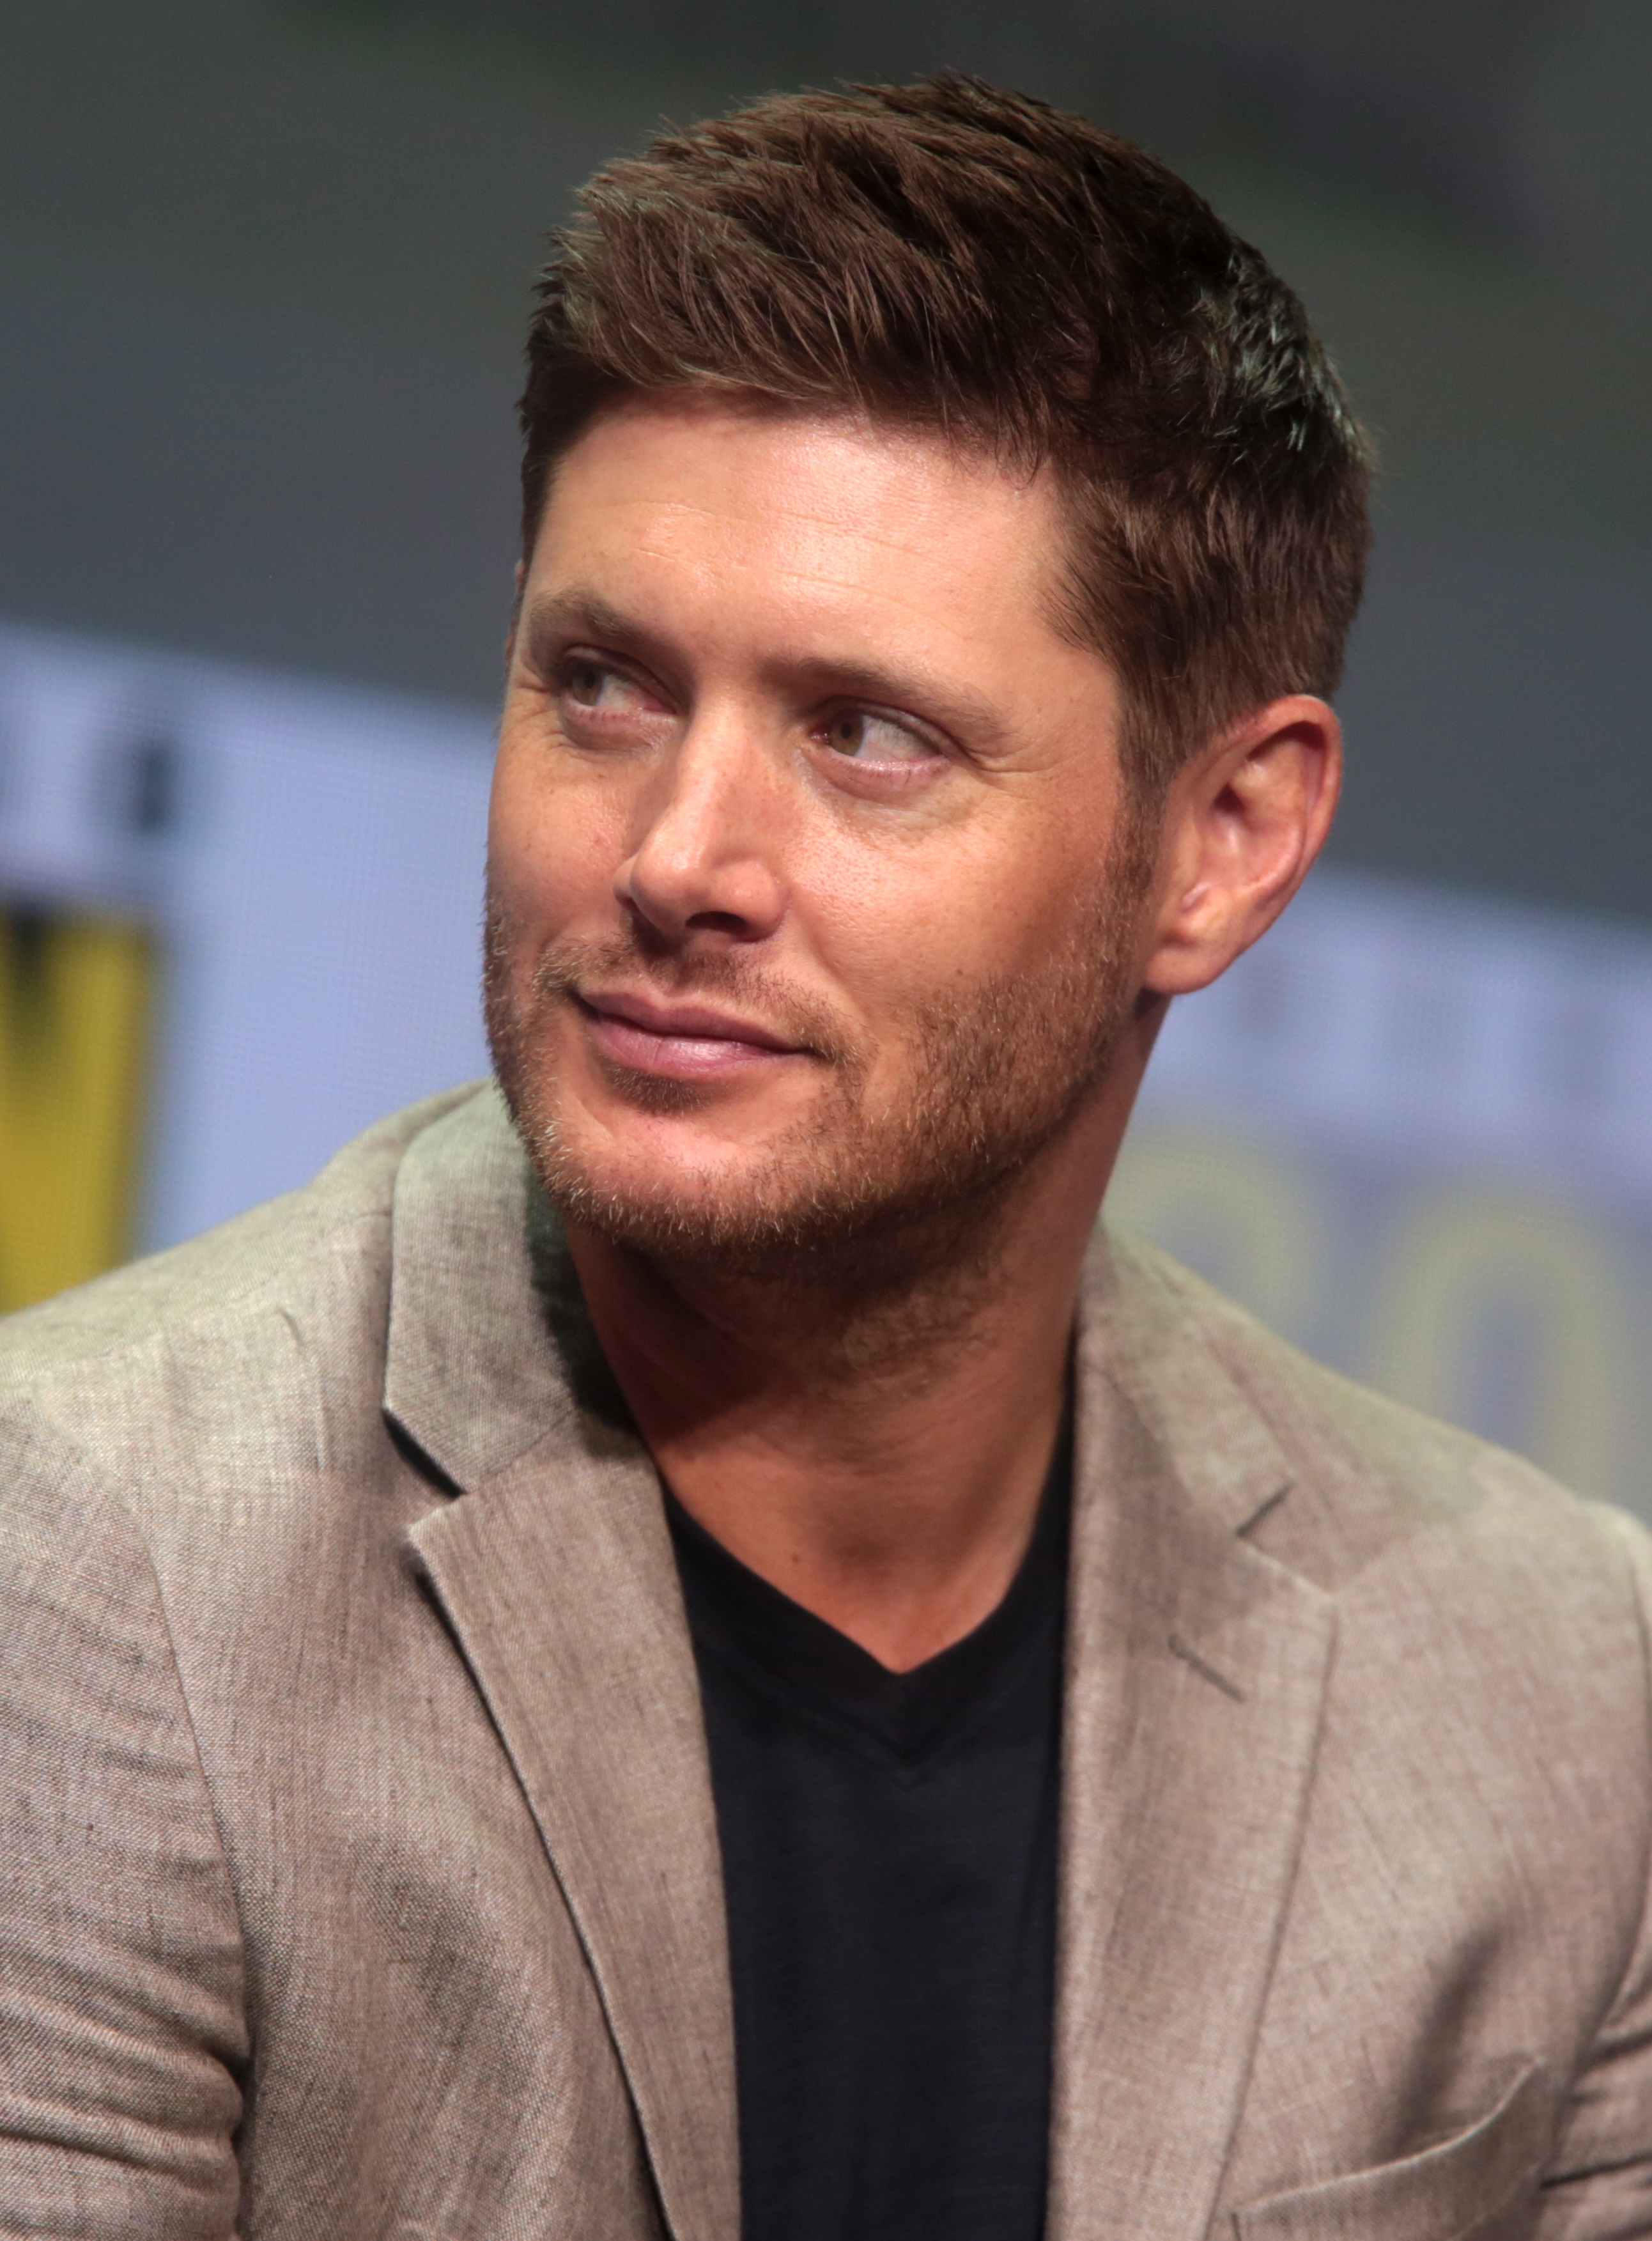 The 40-year old son of father (?) and mother(?) Jensen Ackles in 2018 photo. Jensen Ackles earned a  million dollar salary - leaving the net worth at 10 million in 2018